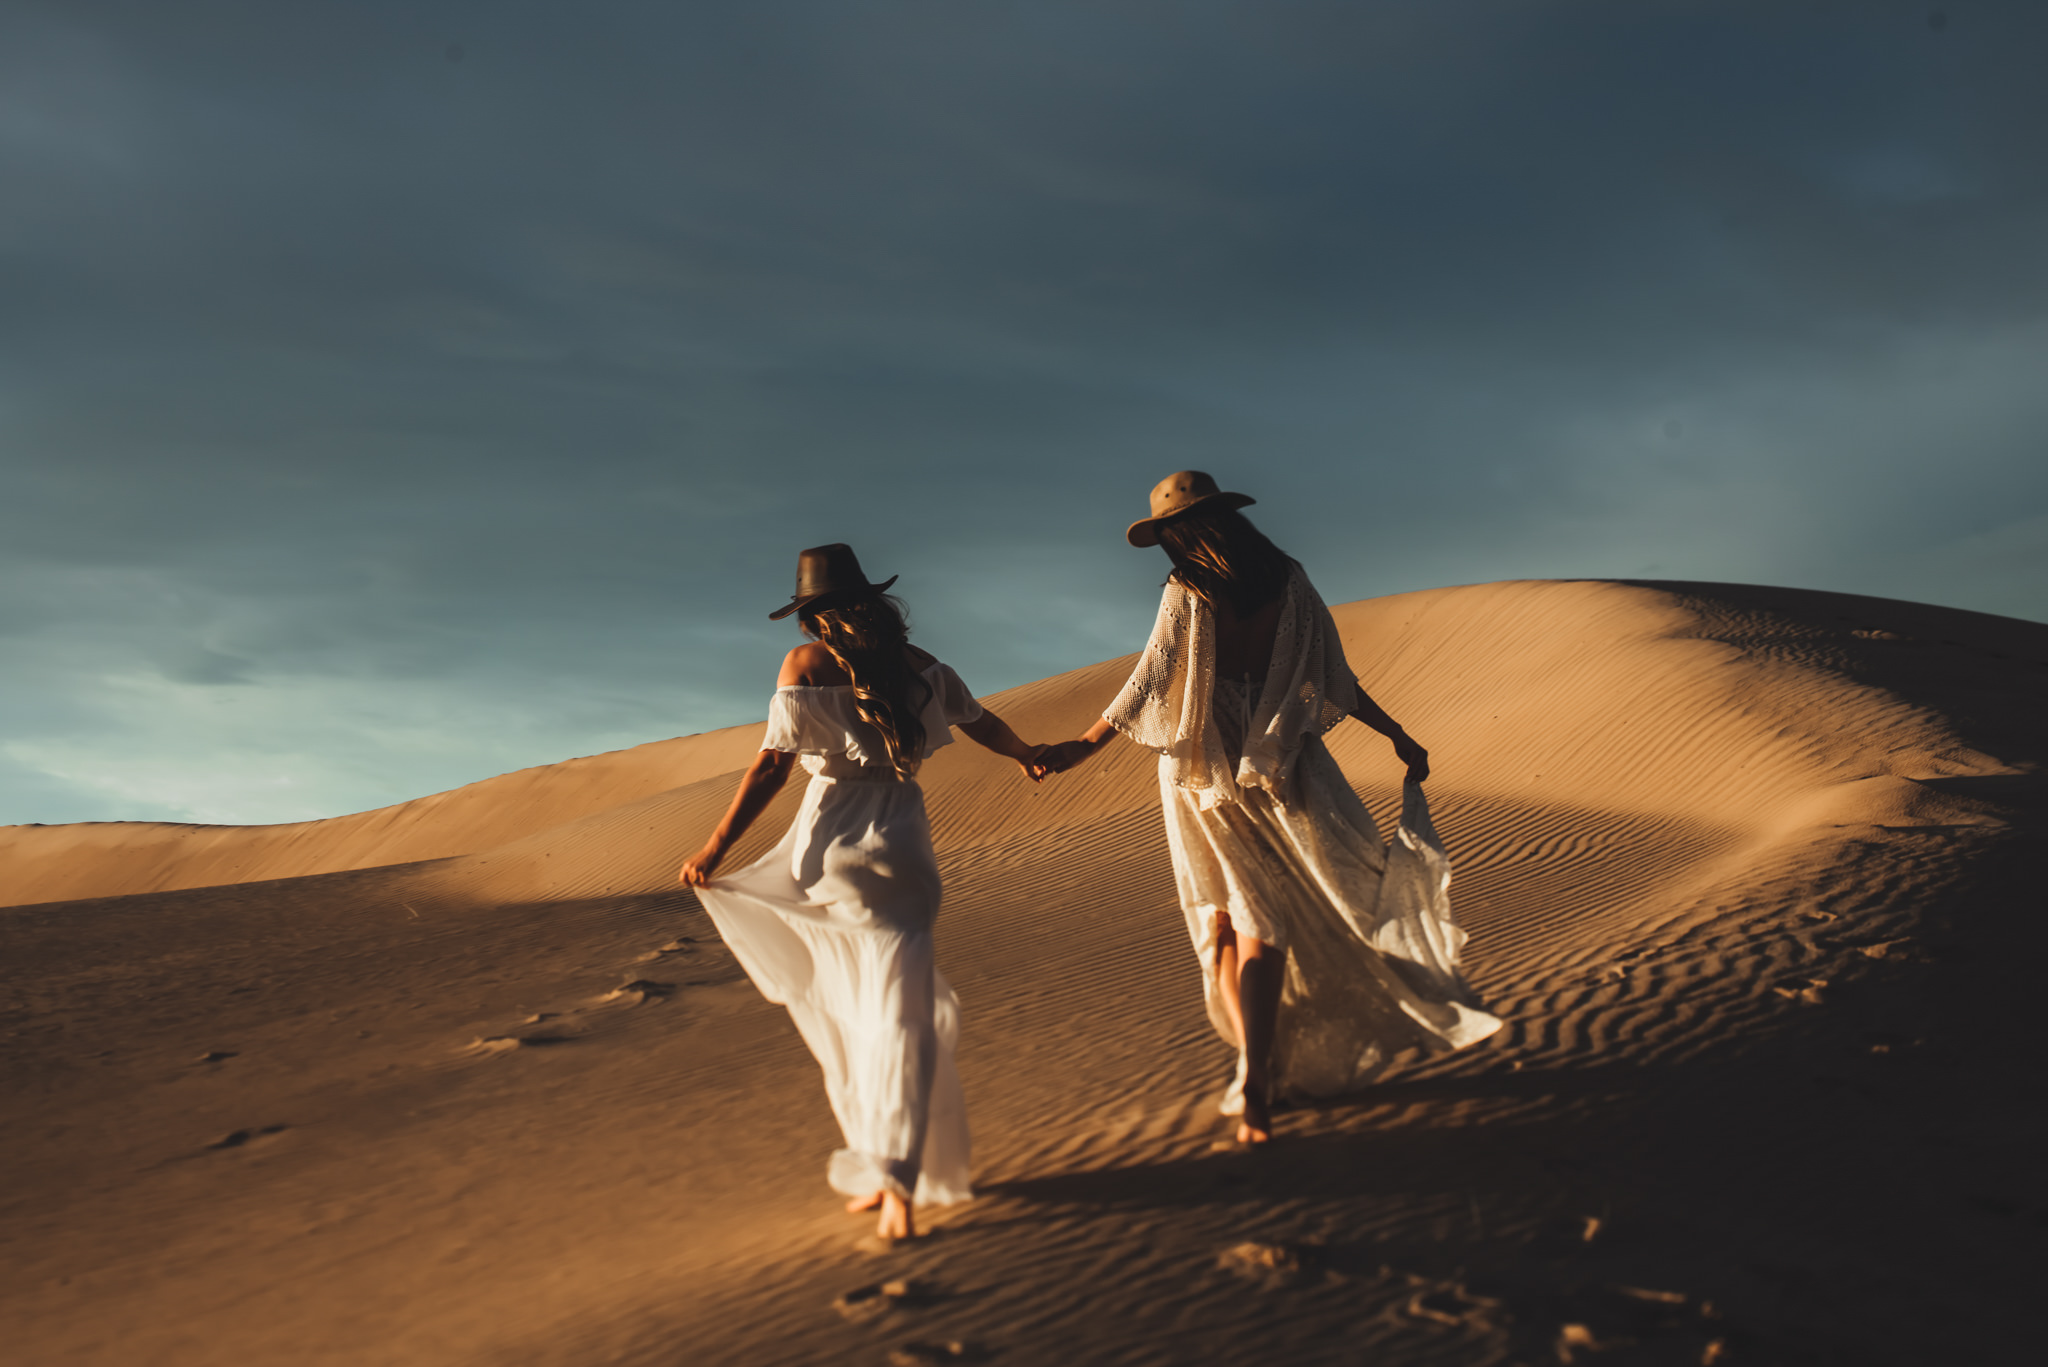 Two woman are holding hands and walking across a sand dune.